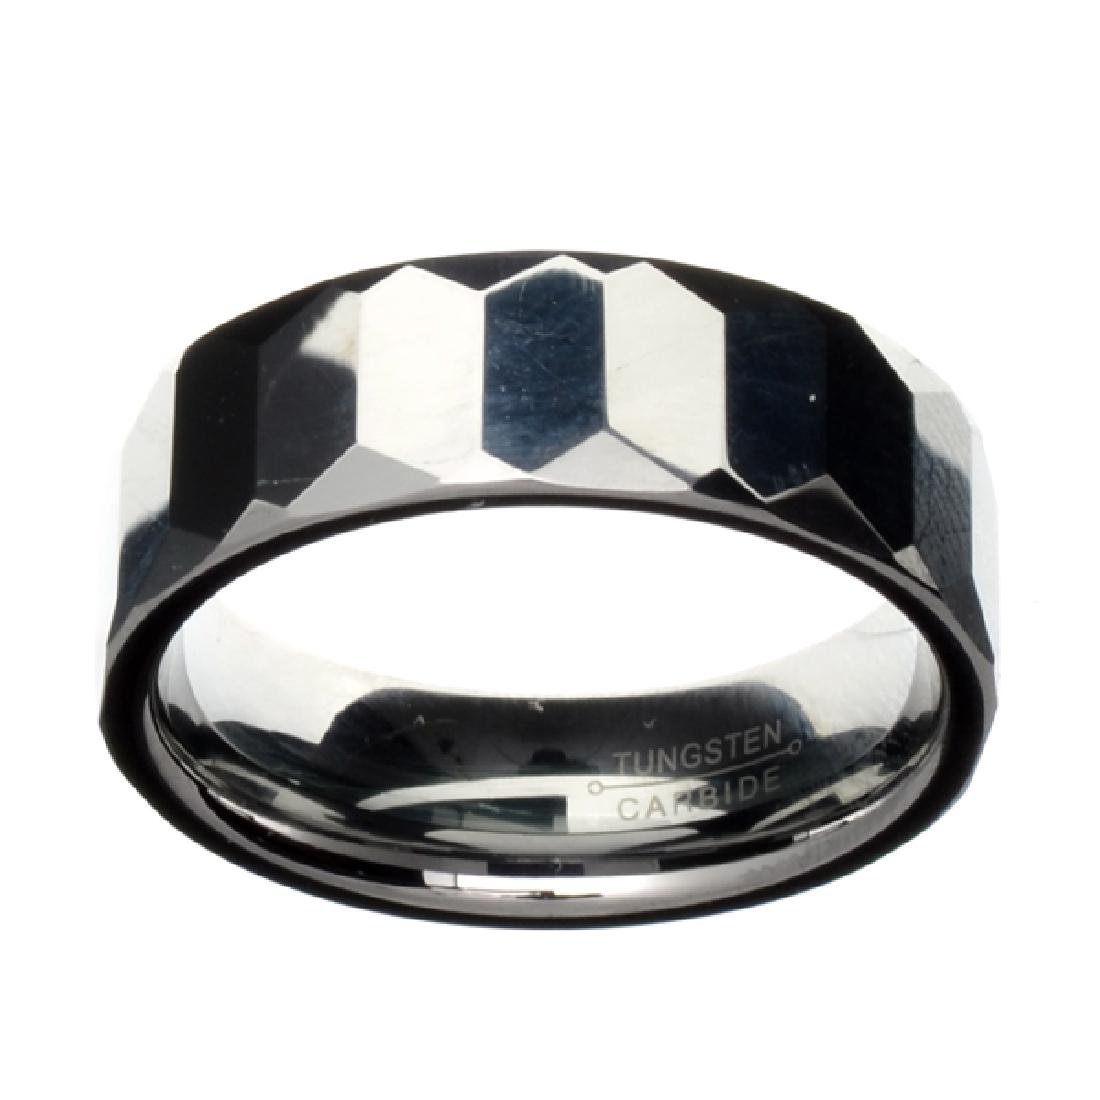 Rare Tungsten Size 9.5 Ring